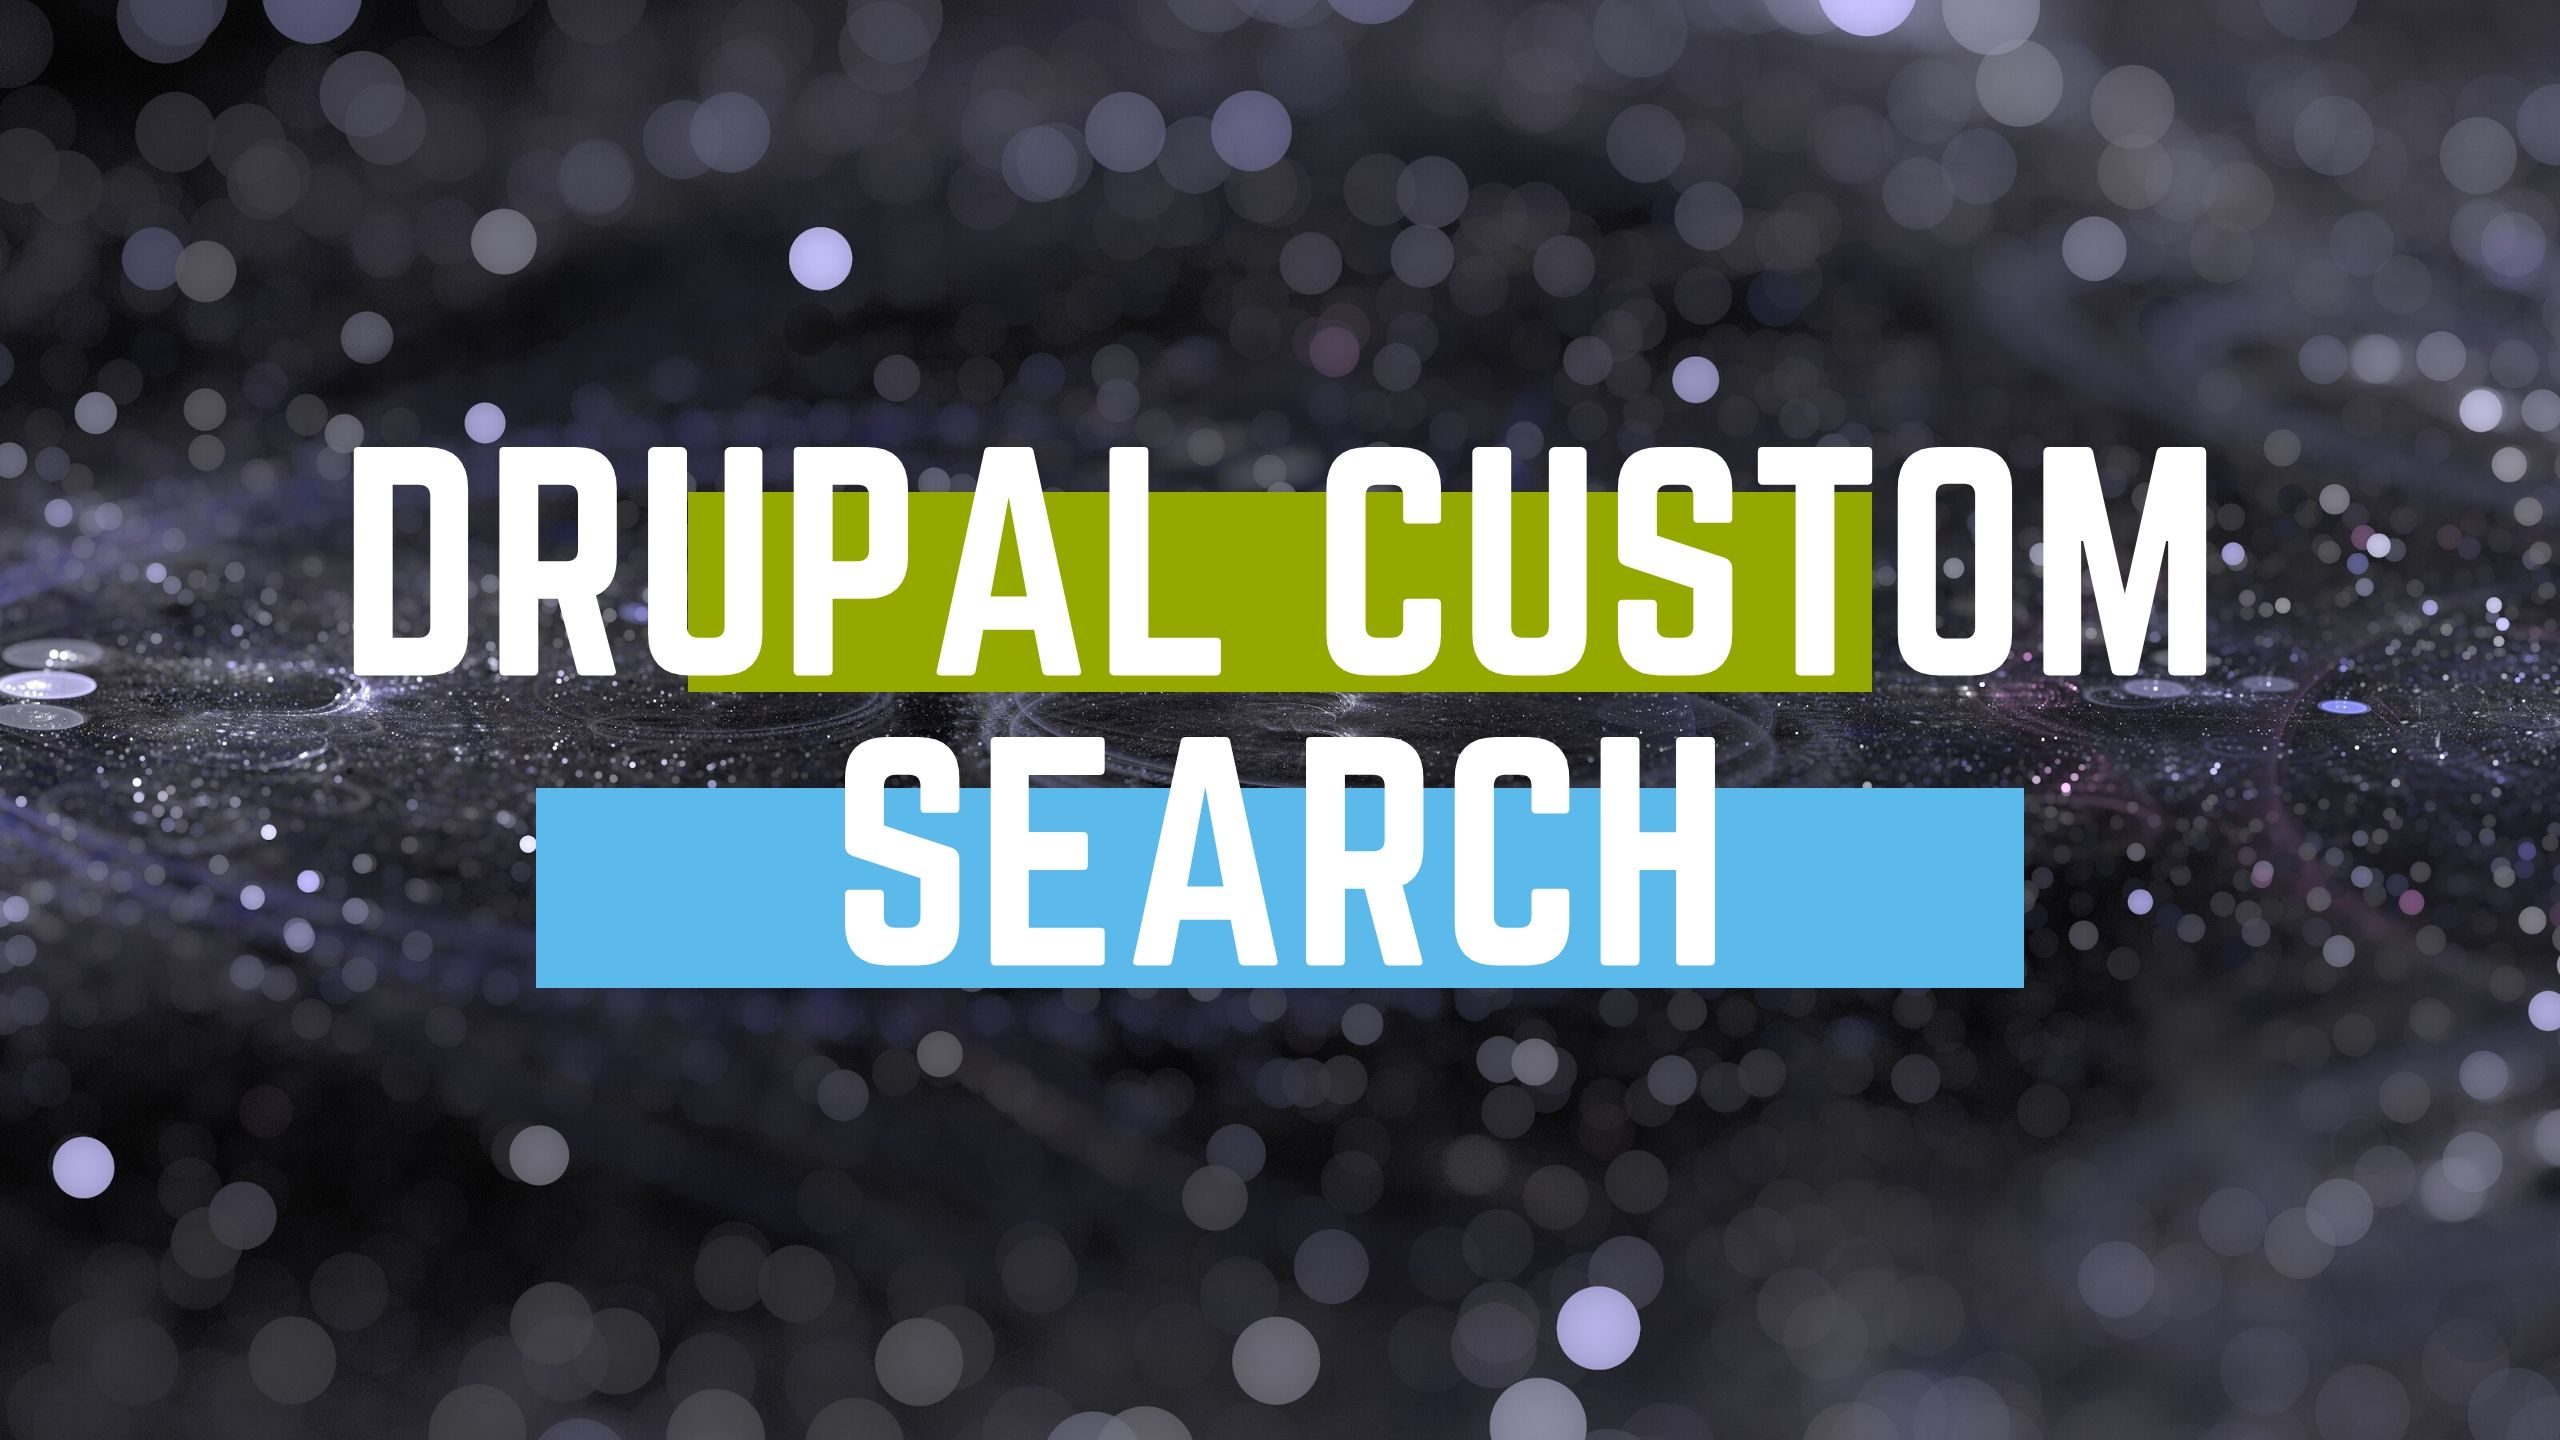 drupal custom search